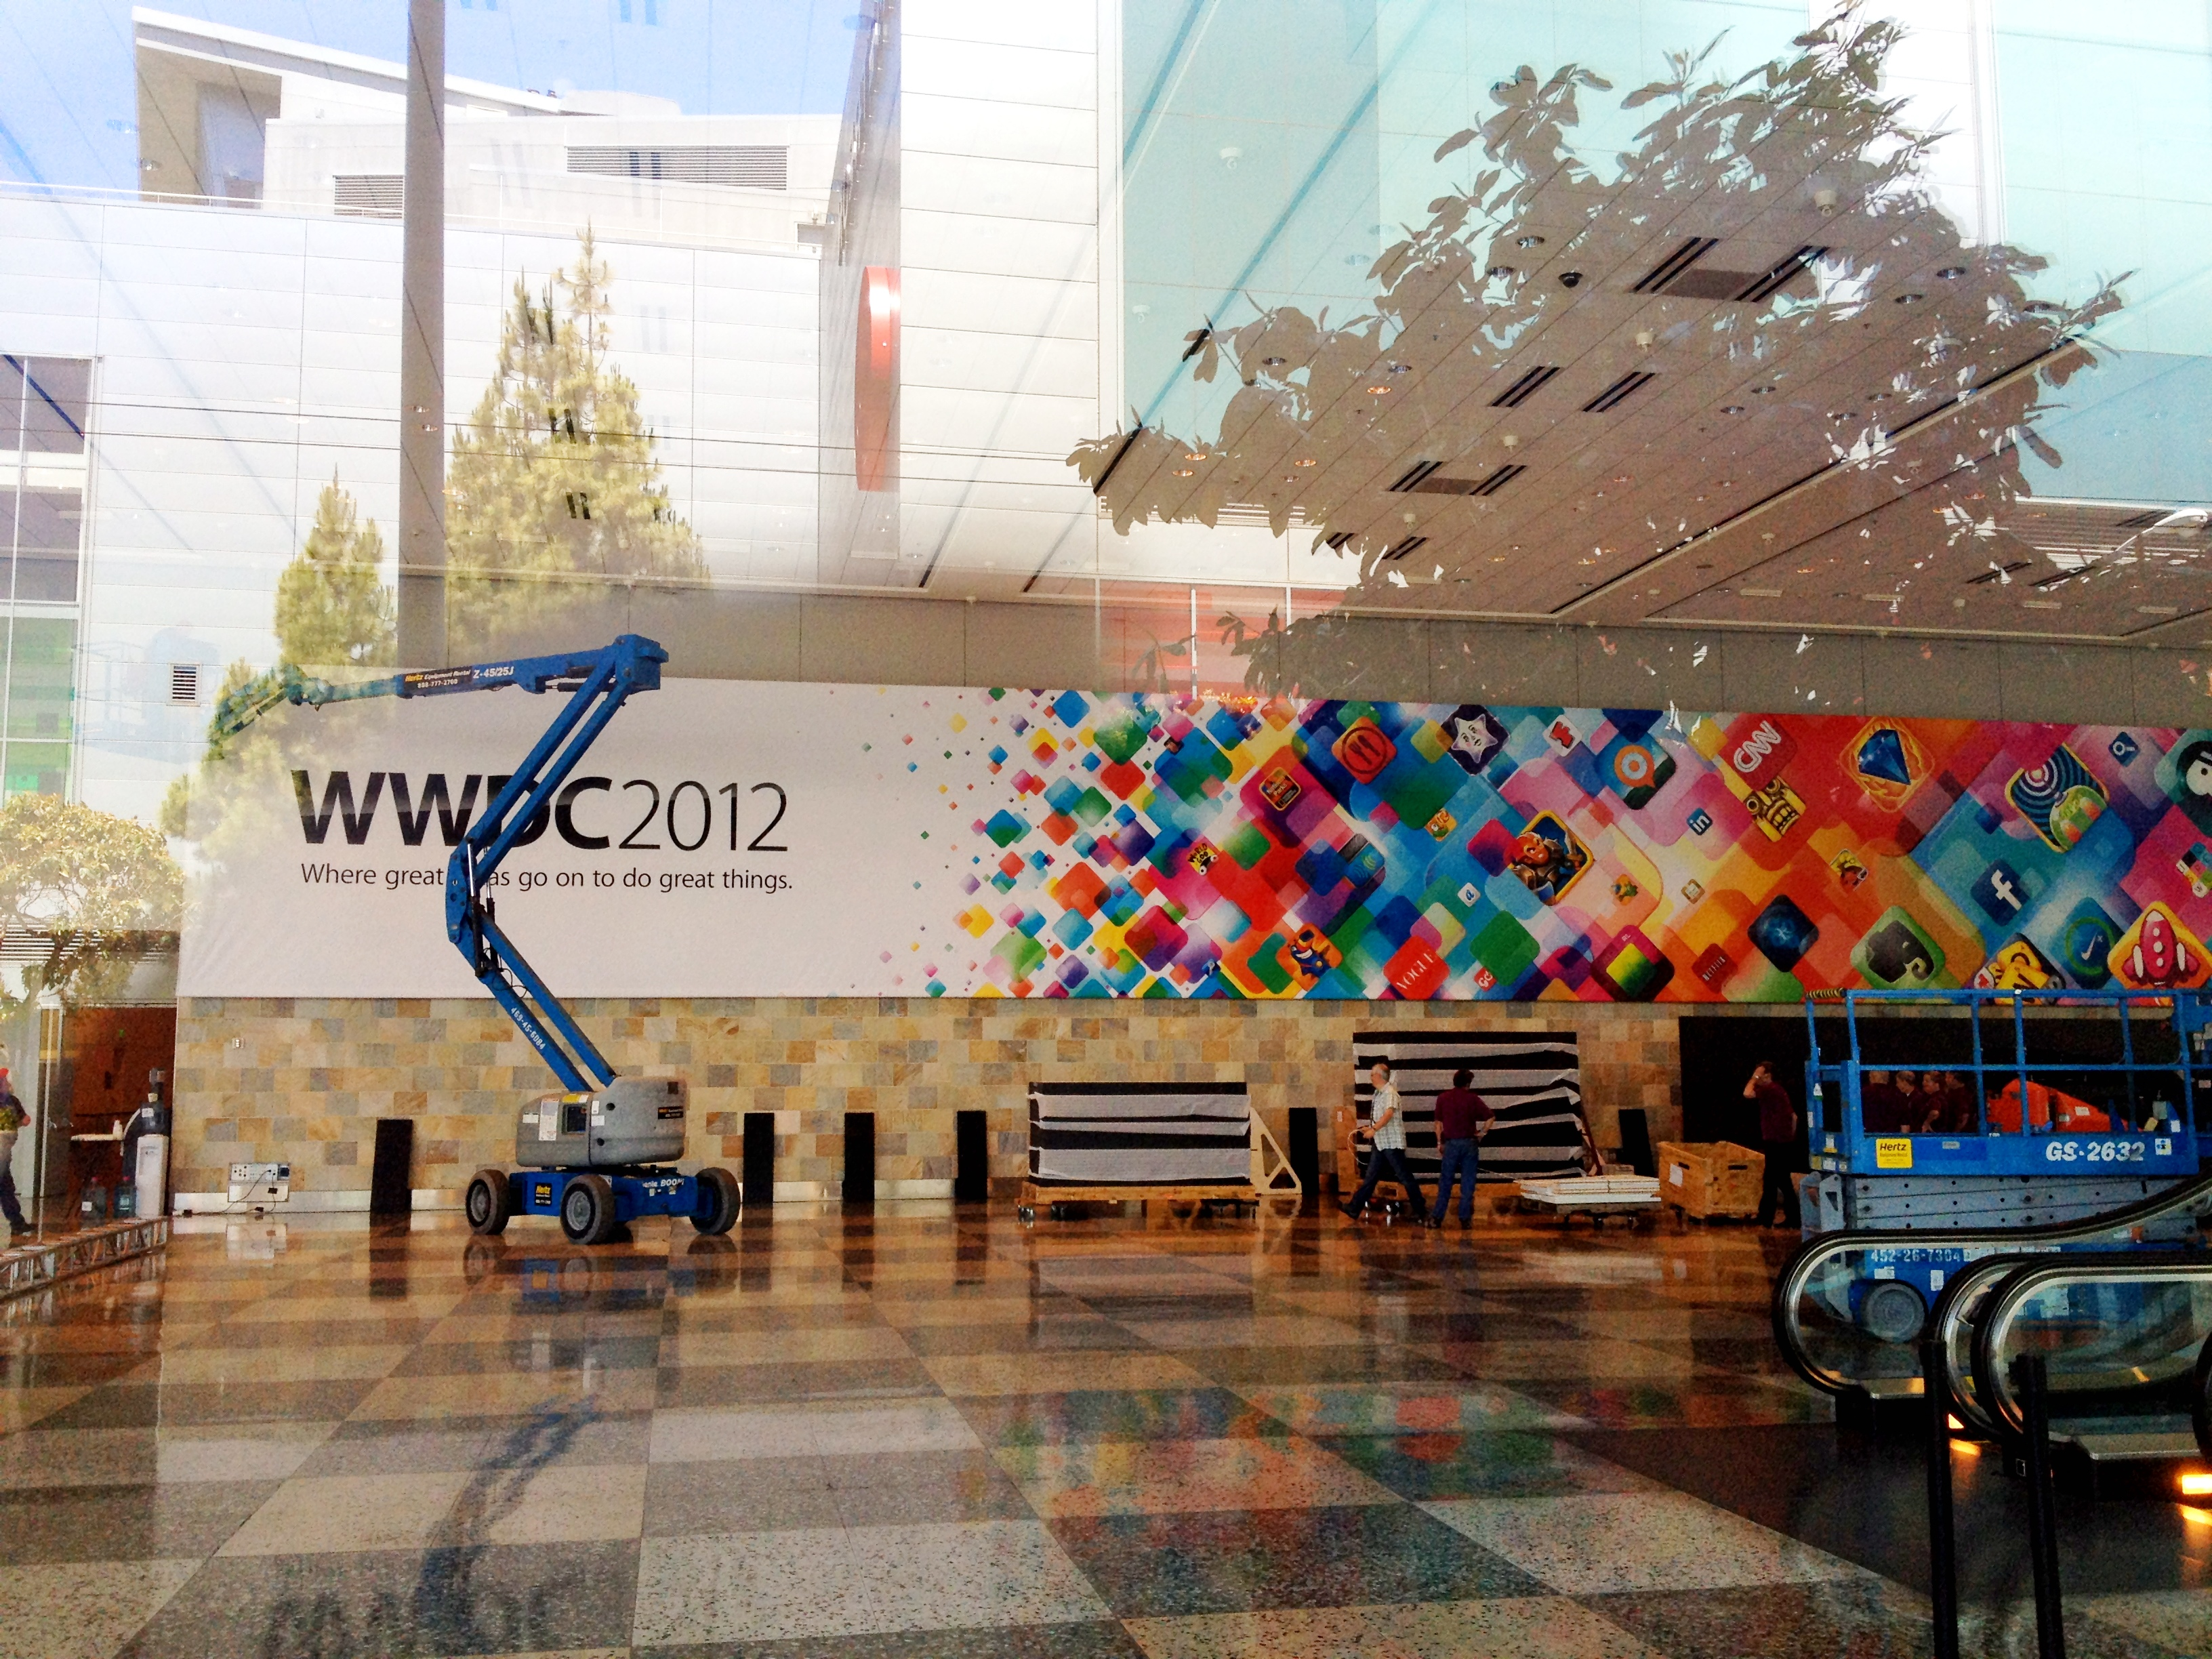 Banner da WWDC 2012 no Moscone Center